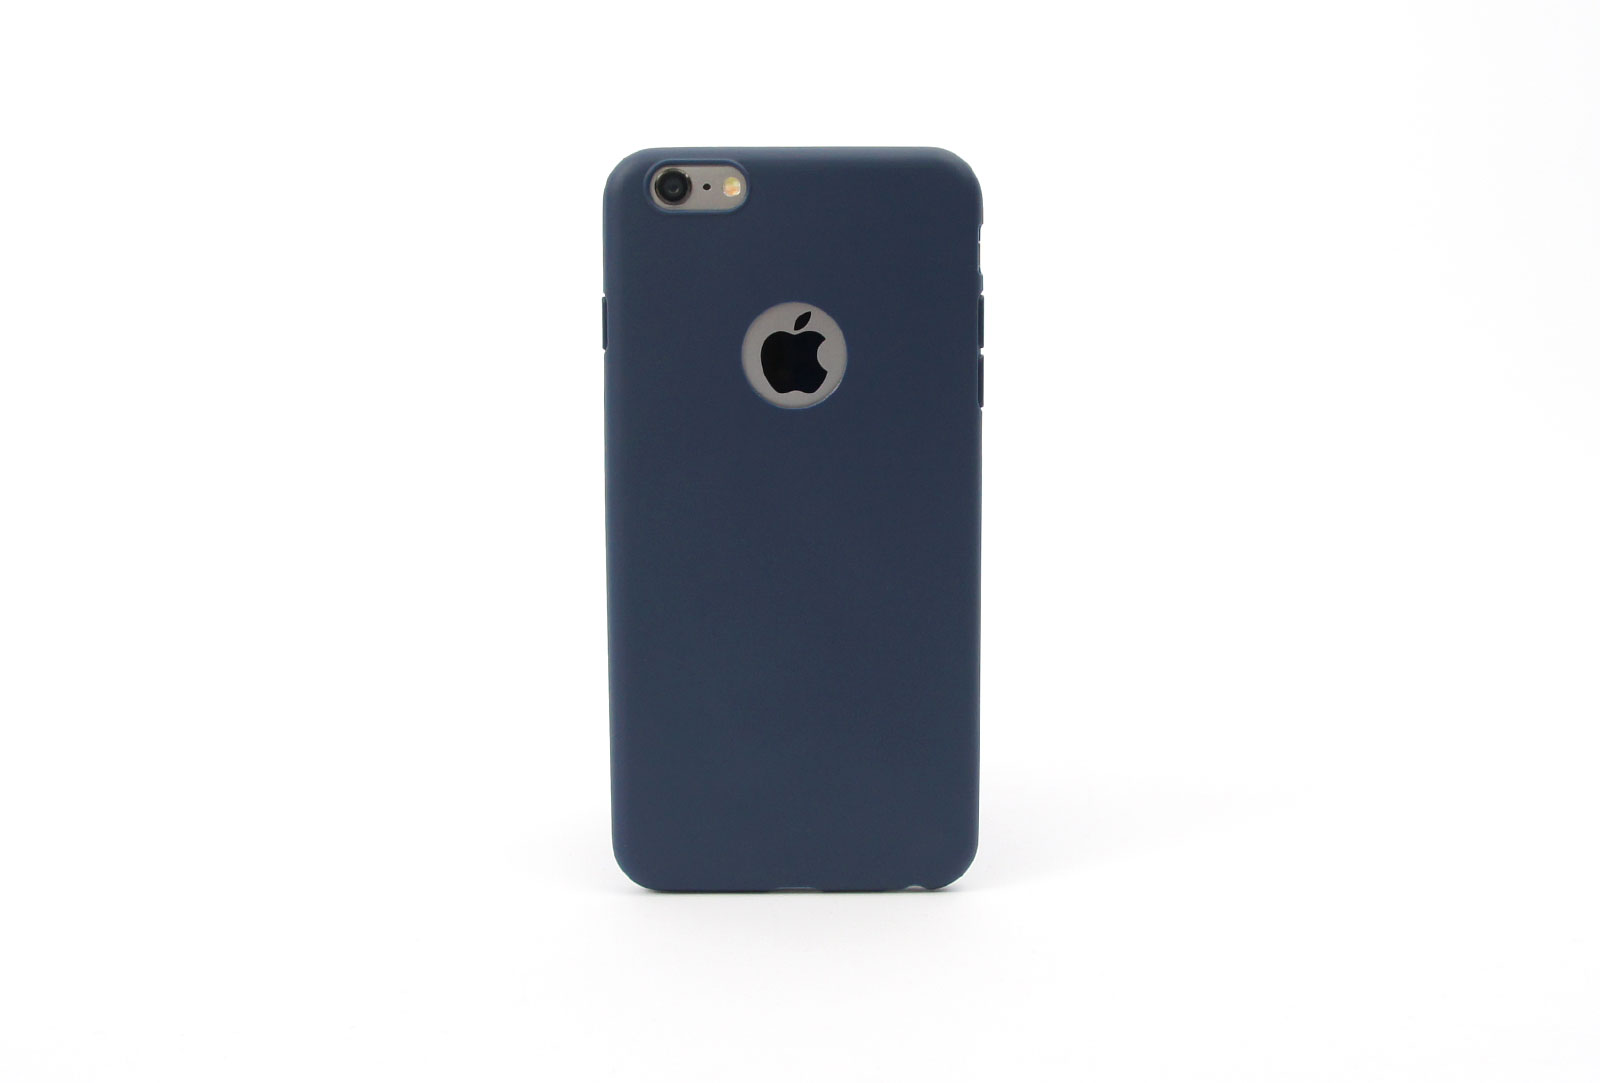 coque silicone souple bleu marine pour iphone 5 iphone 5. Black Bedroom Furniture Sets. Home Design Ideas